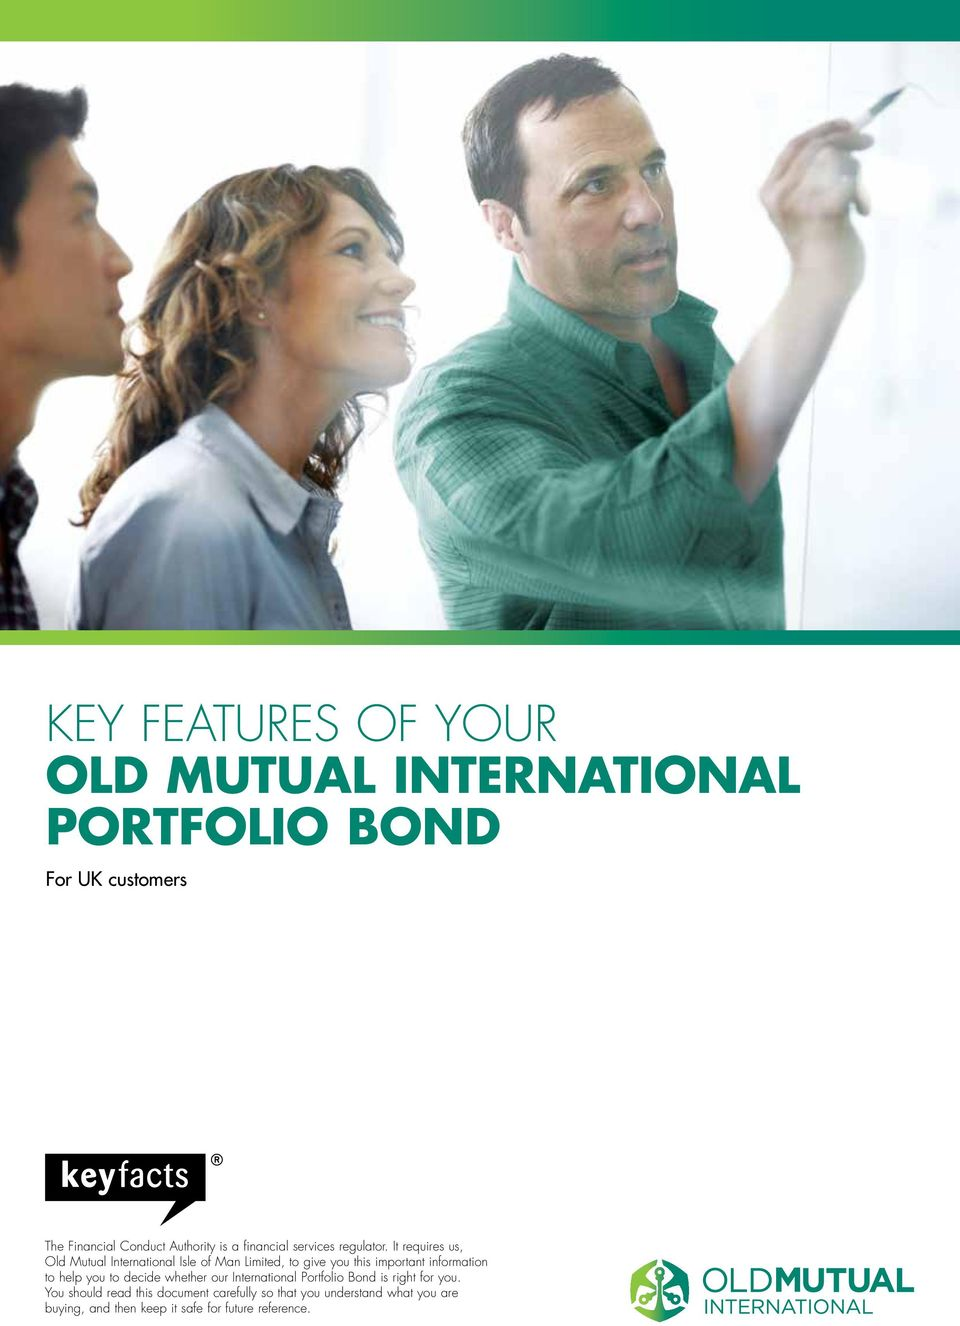 It requires us, Old Mutual International Isle of Man Limited, to give you this important information to help you